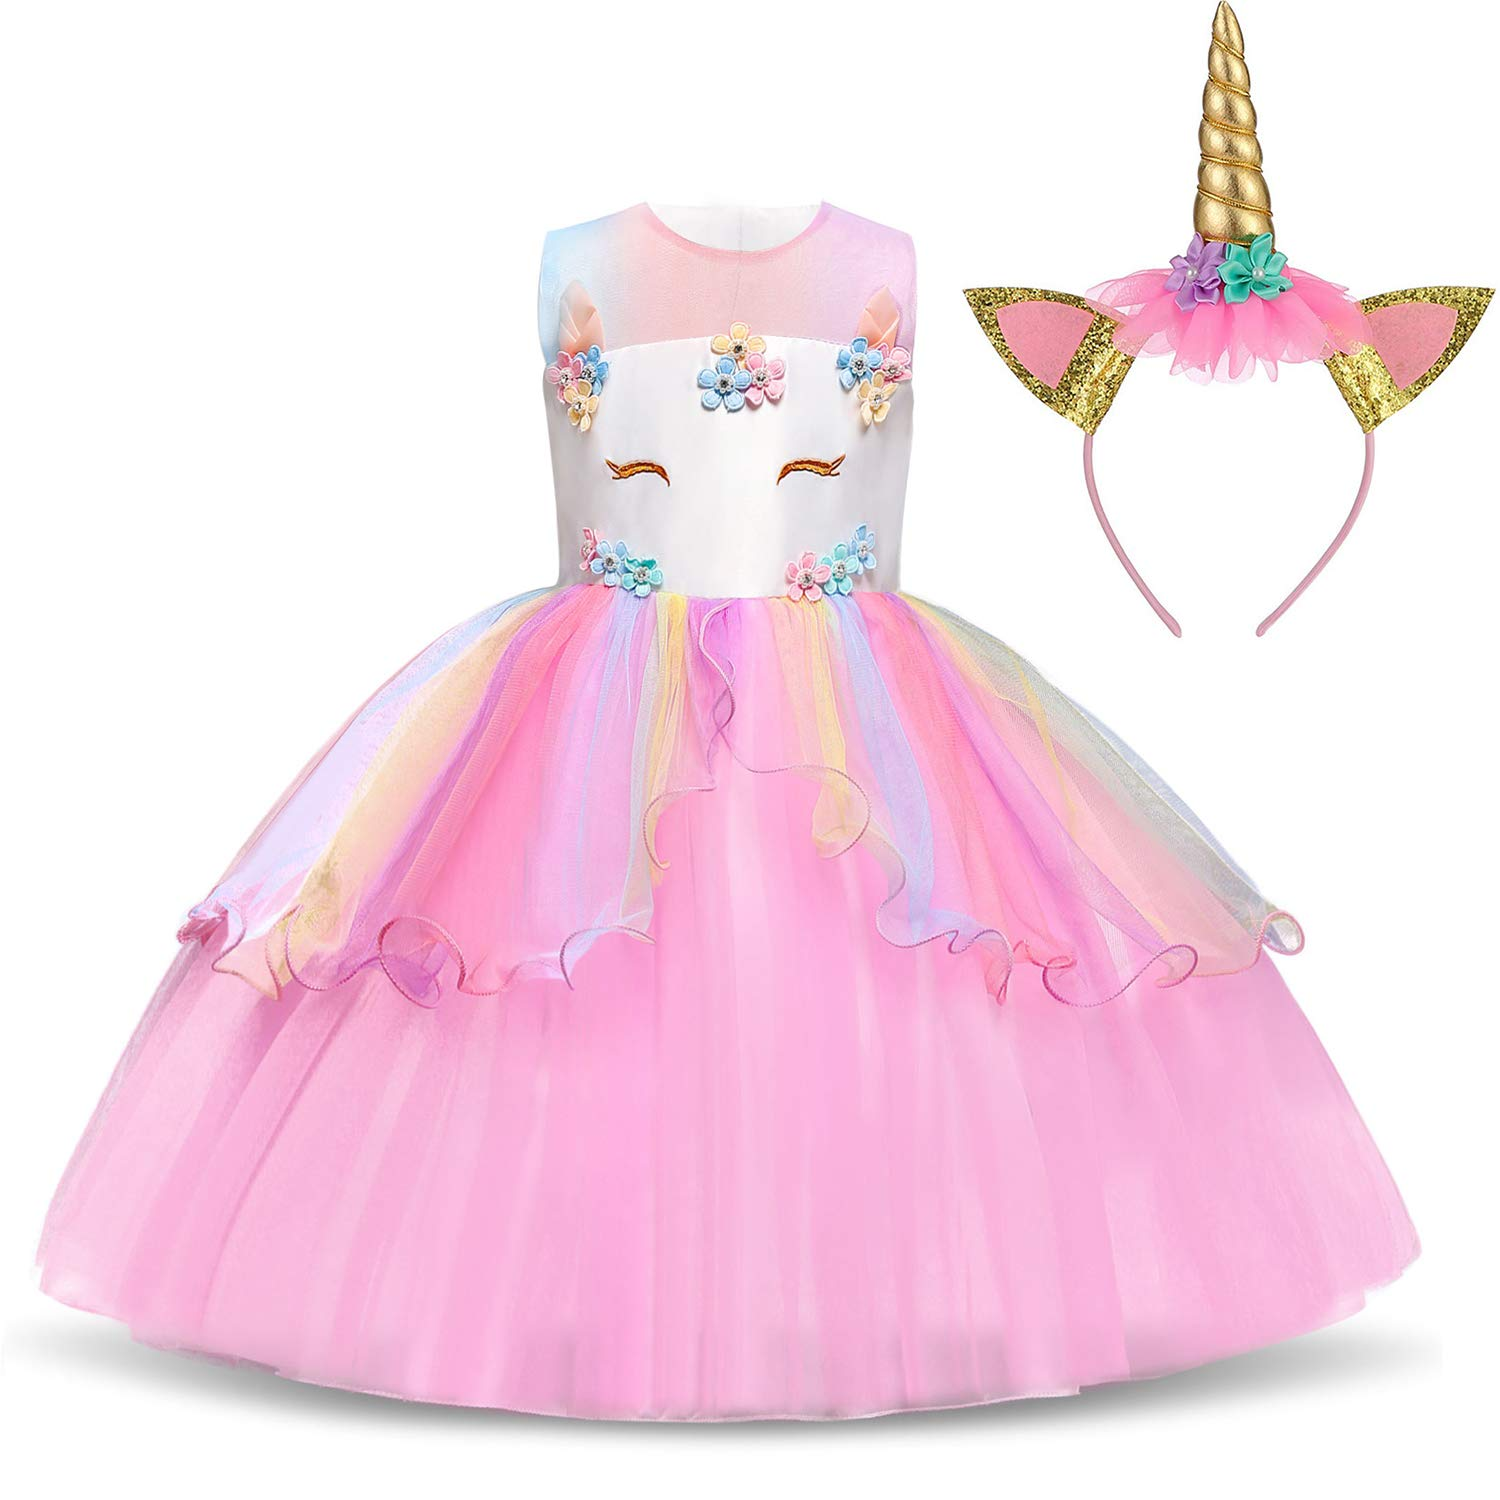 TTYAOVO Flower Girls Unicorn Costume Dress Girl Princess Pageant Party Dress 8-9 Years Pink